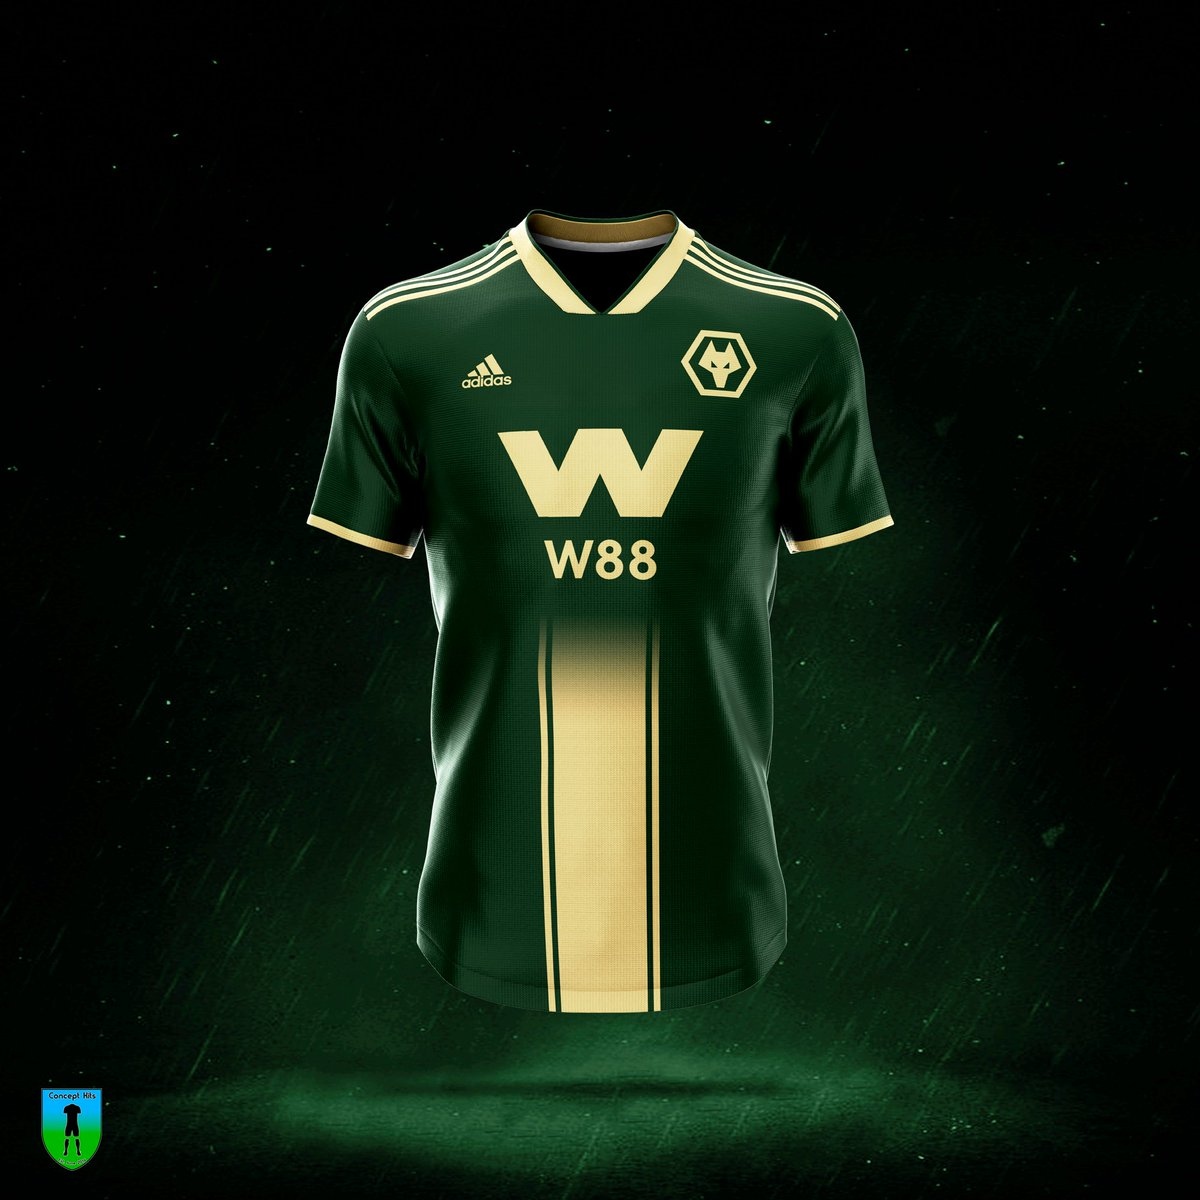 e1df13198 Concept Kits on Twitter